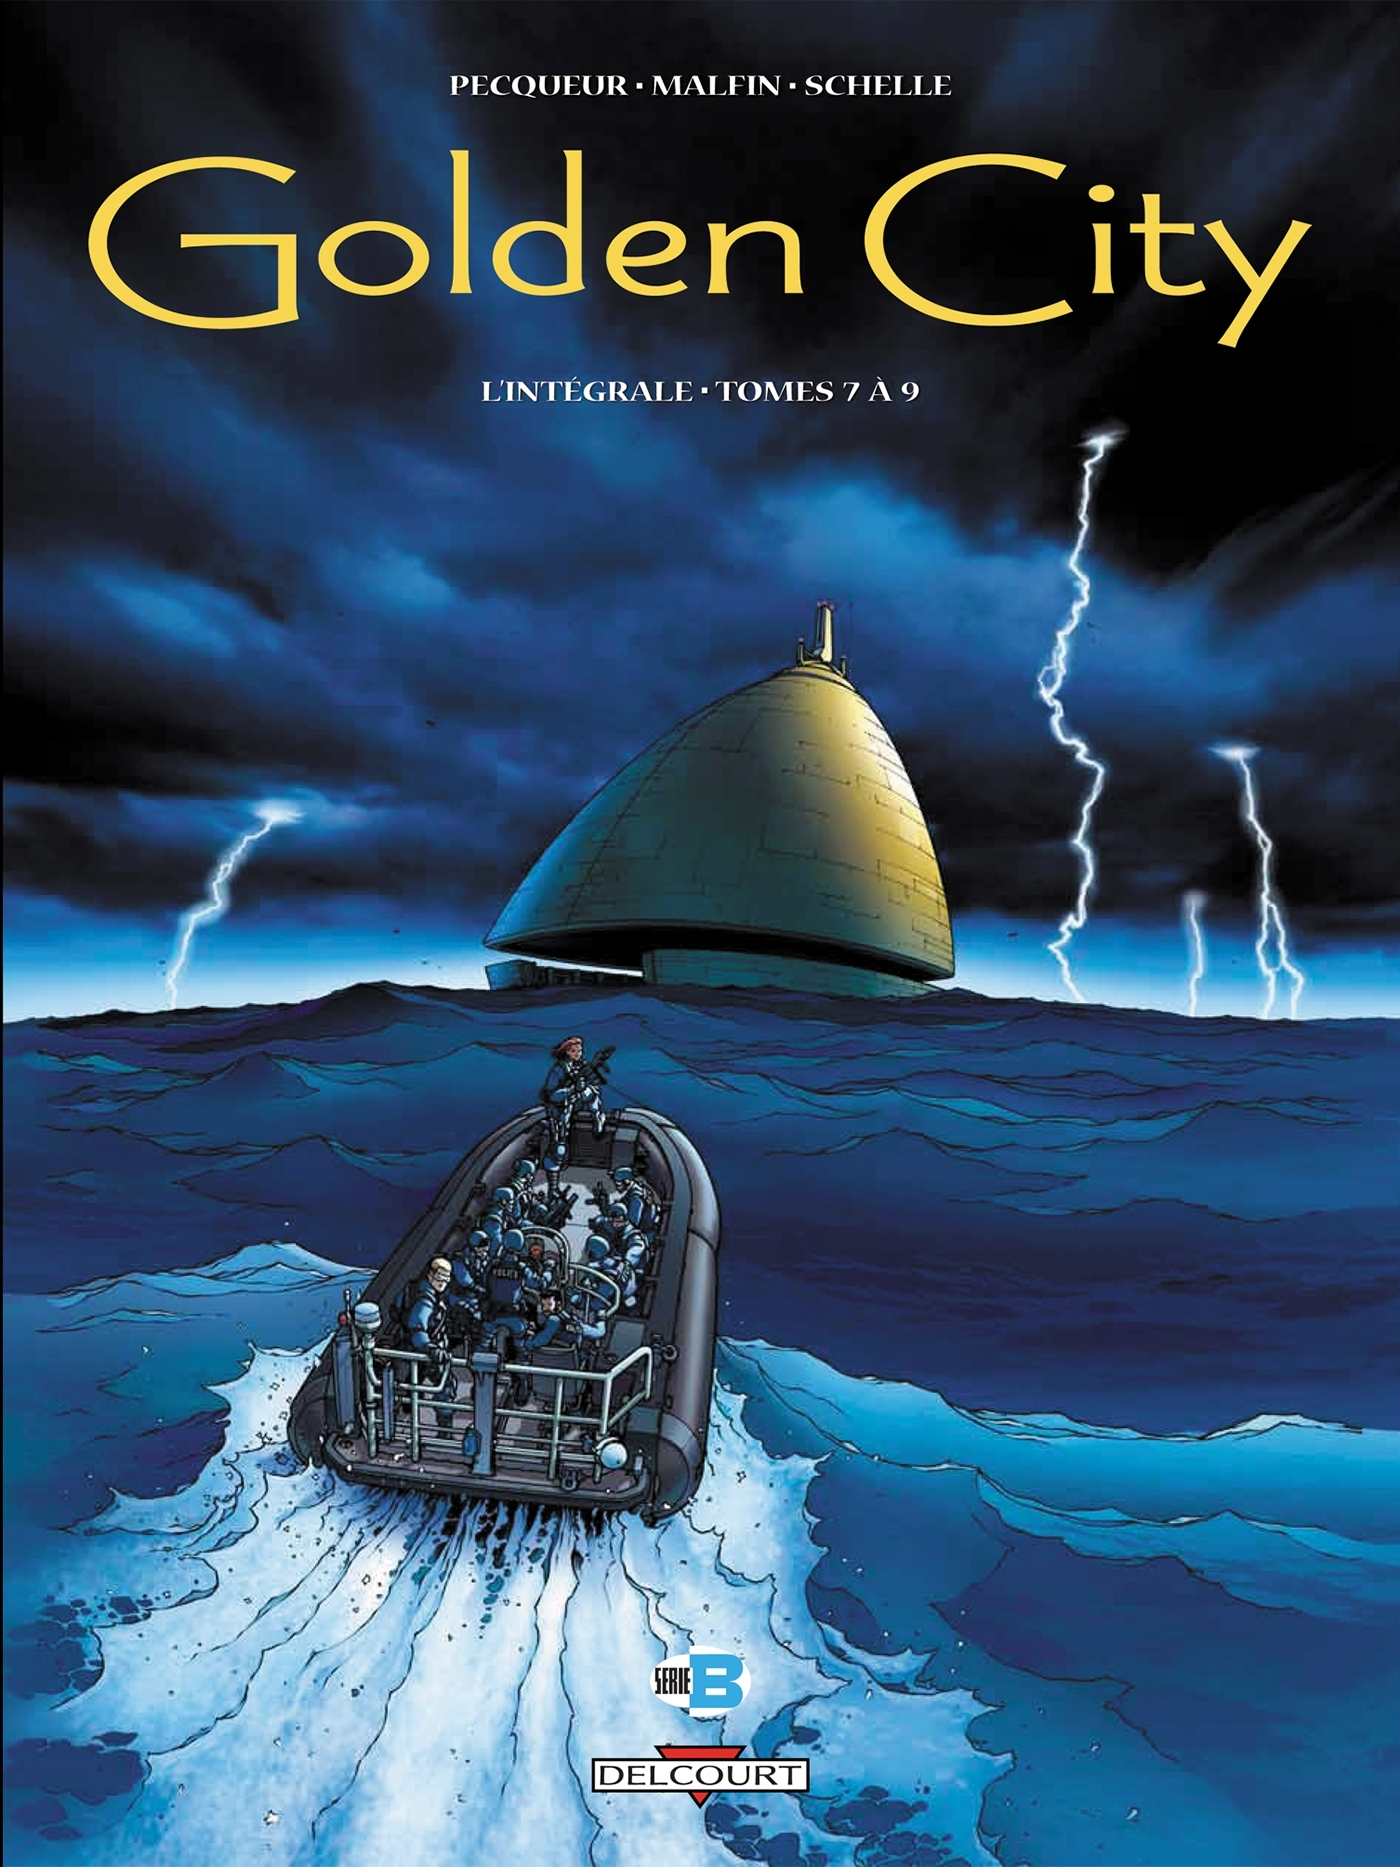 GOLDEN CITY - INTEGRALE (T07 A T09)